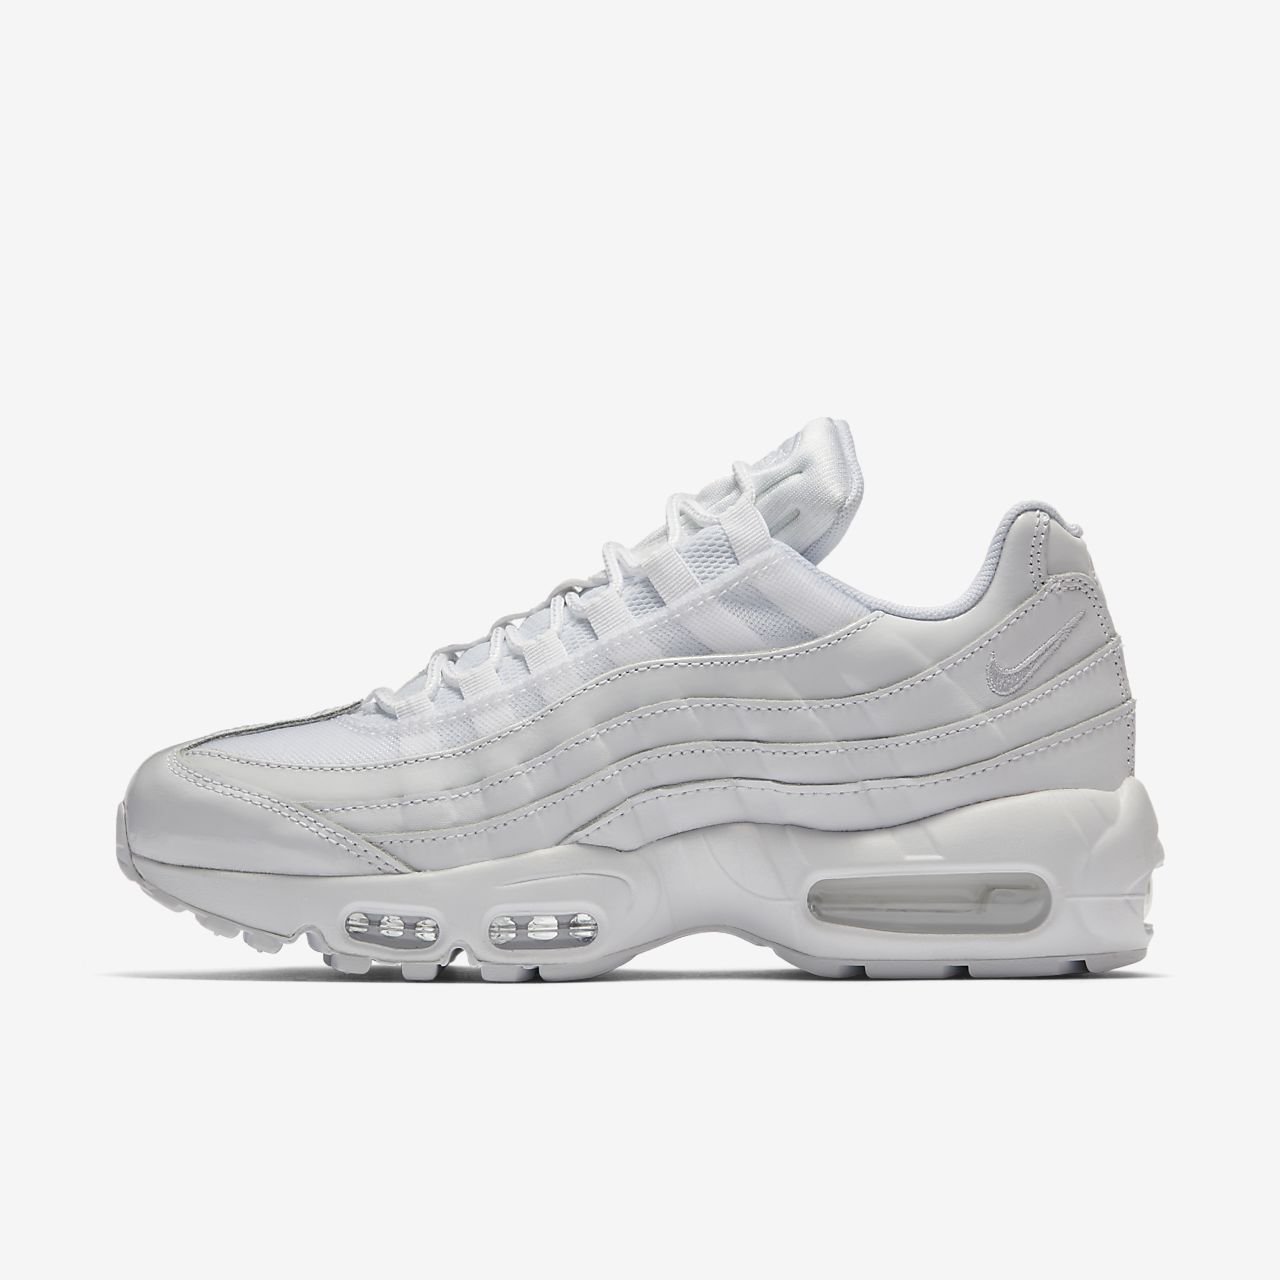 new concept 1db1a e3741 Nike Air Max 95 Women s Shoe. Nike.com CA